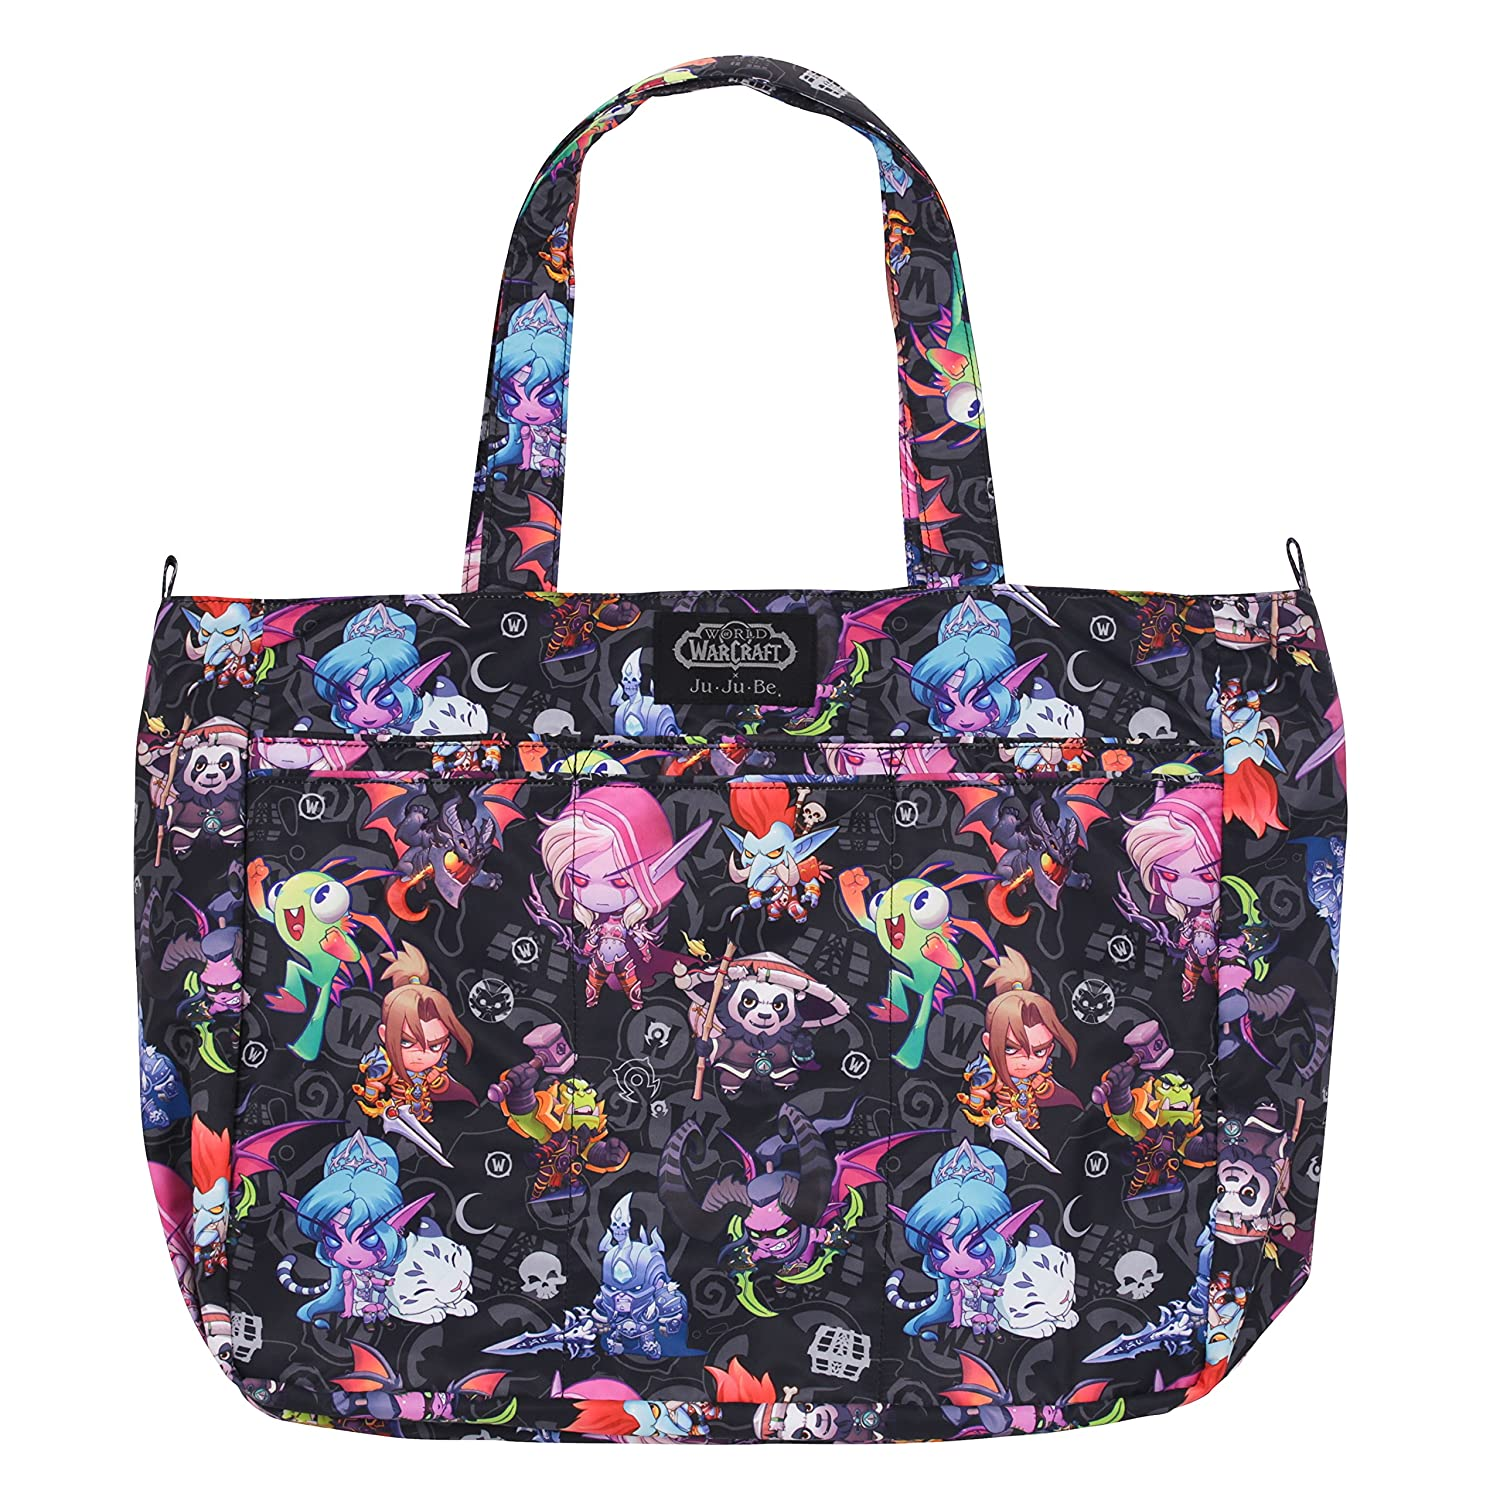 de2df73d340d5 Amazon.com : JuJuBe Super Be Large Everyday Lightweight Zippered Tote Bag,  World of Warcraft Collection - Cute But Deadly : Baby